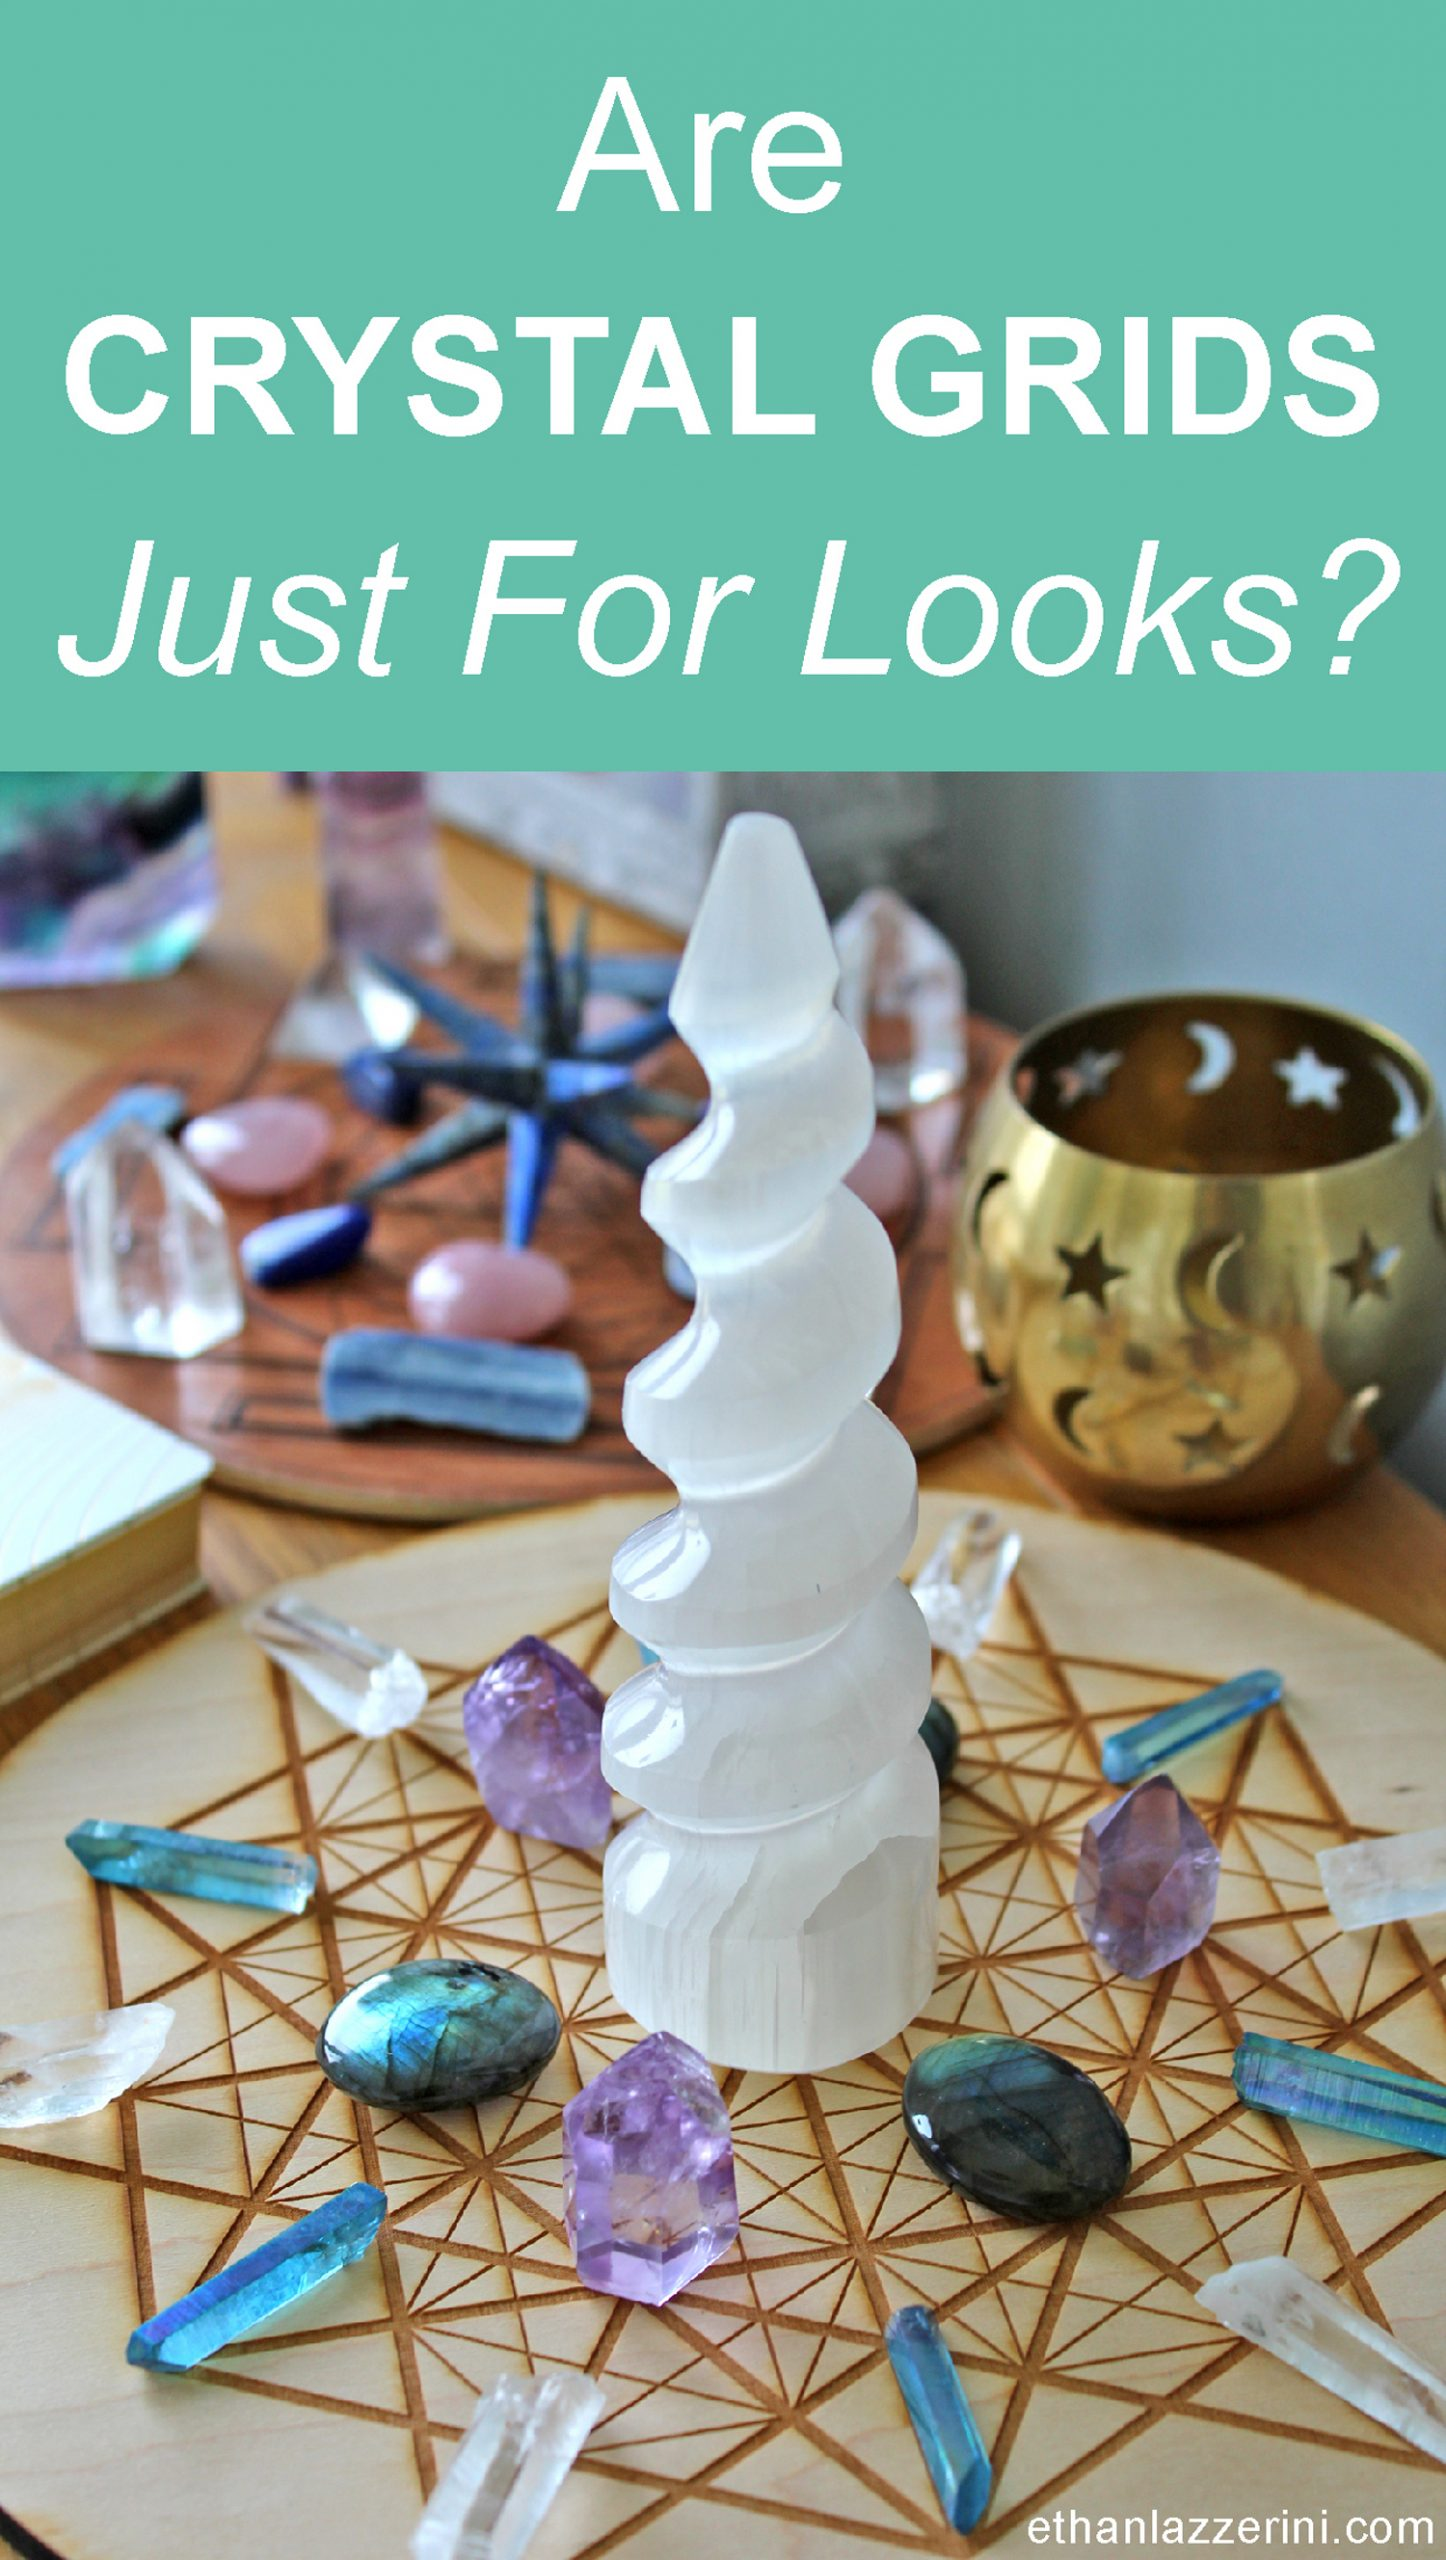 Are crystal grids just for looks and aesthetics?